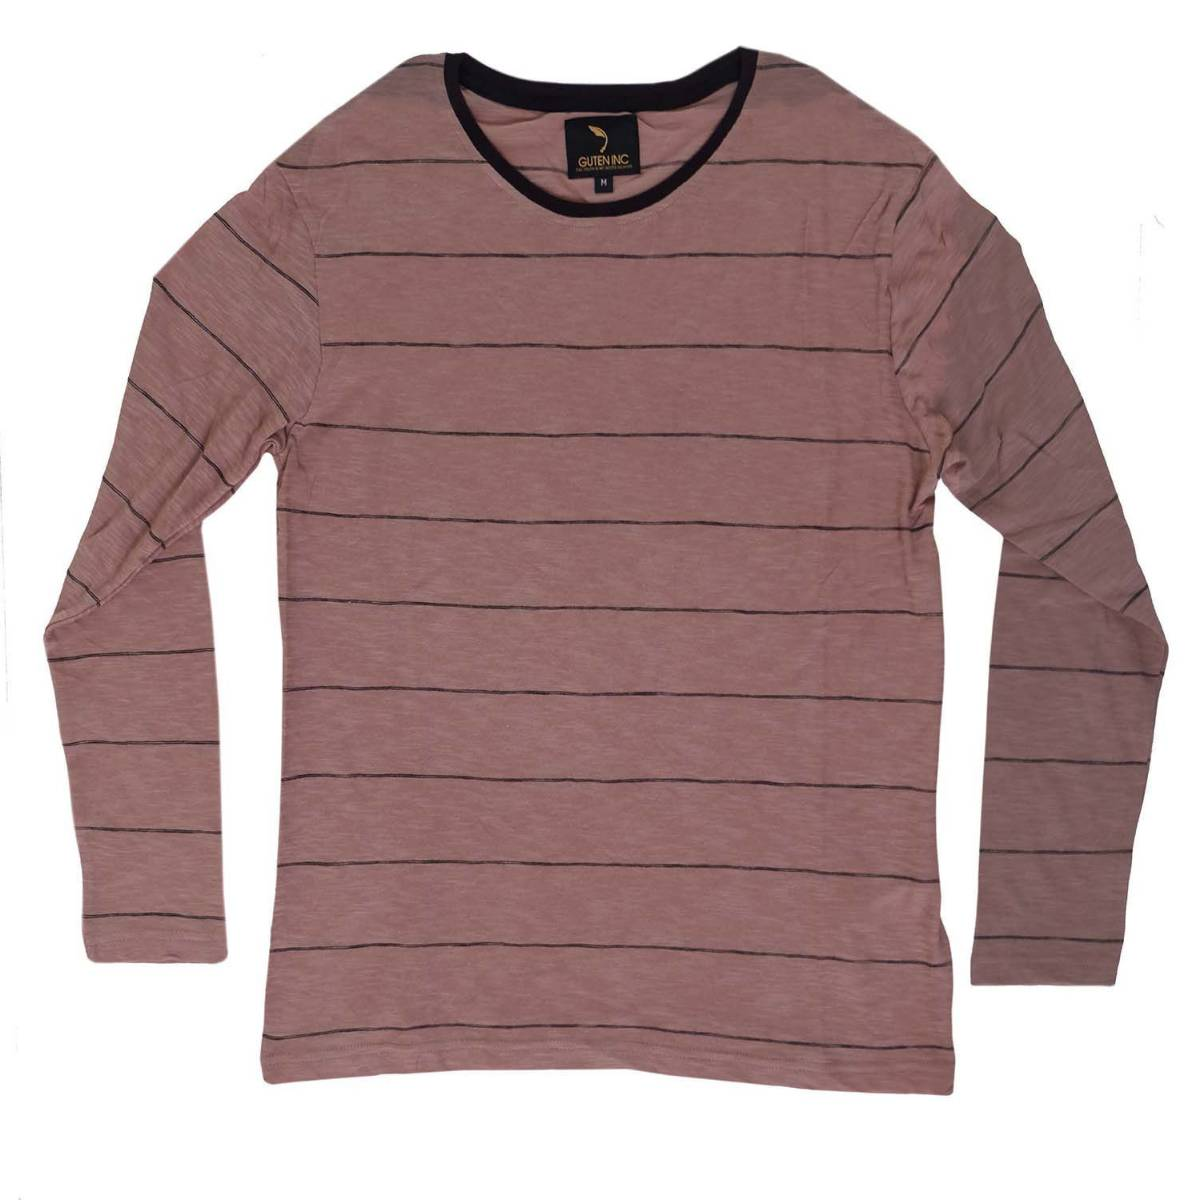 Kaos Lengan Panjang / Chester Brown Thin Stripe Ls